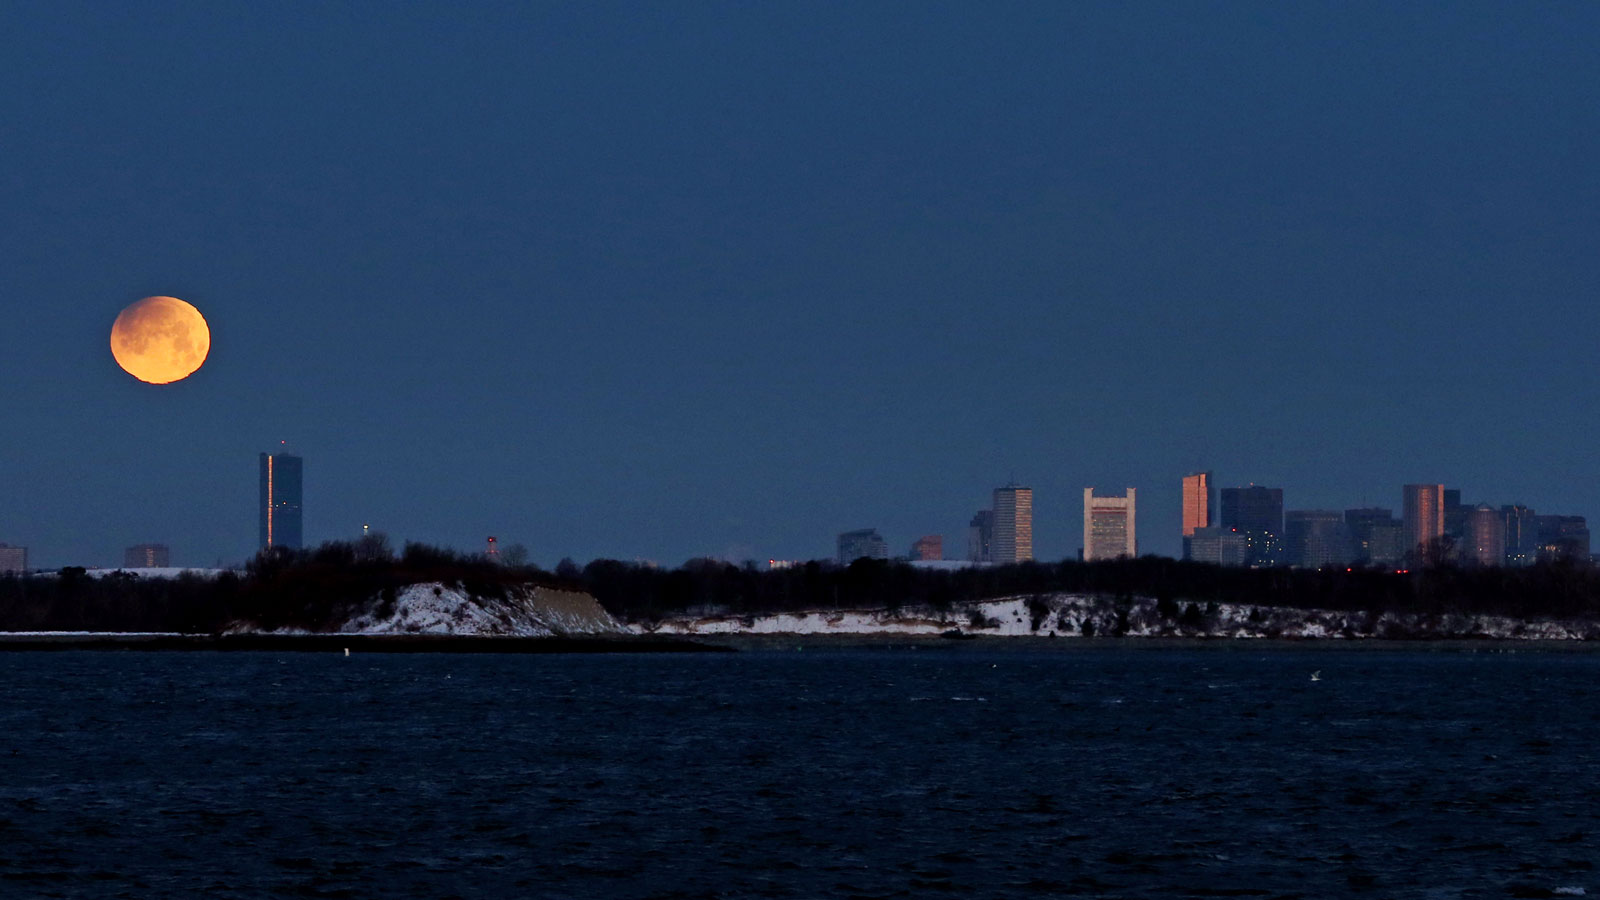 A super blue blood moon setting over Boston